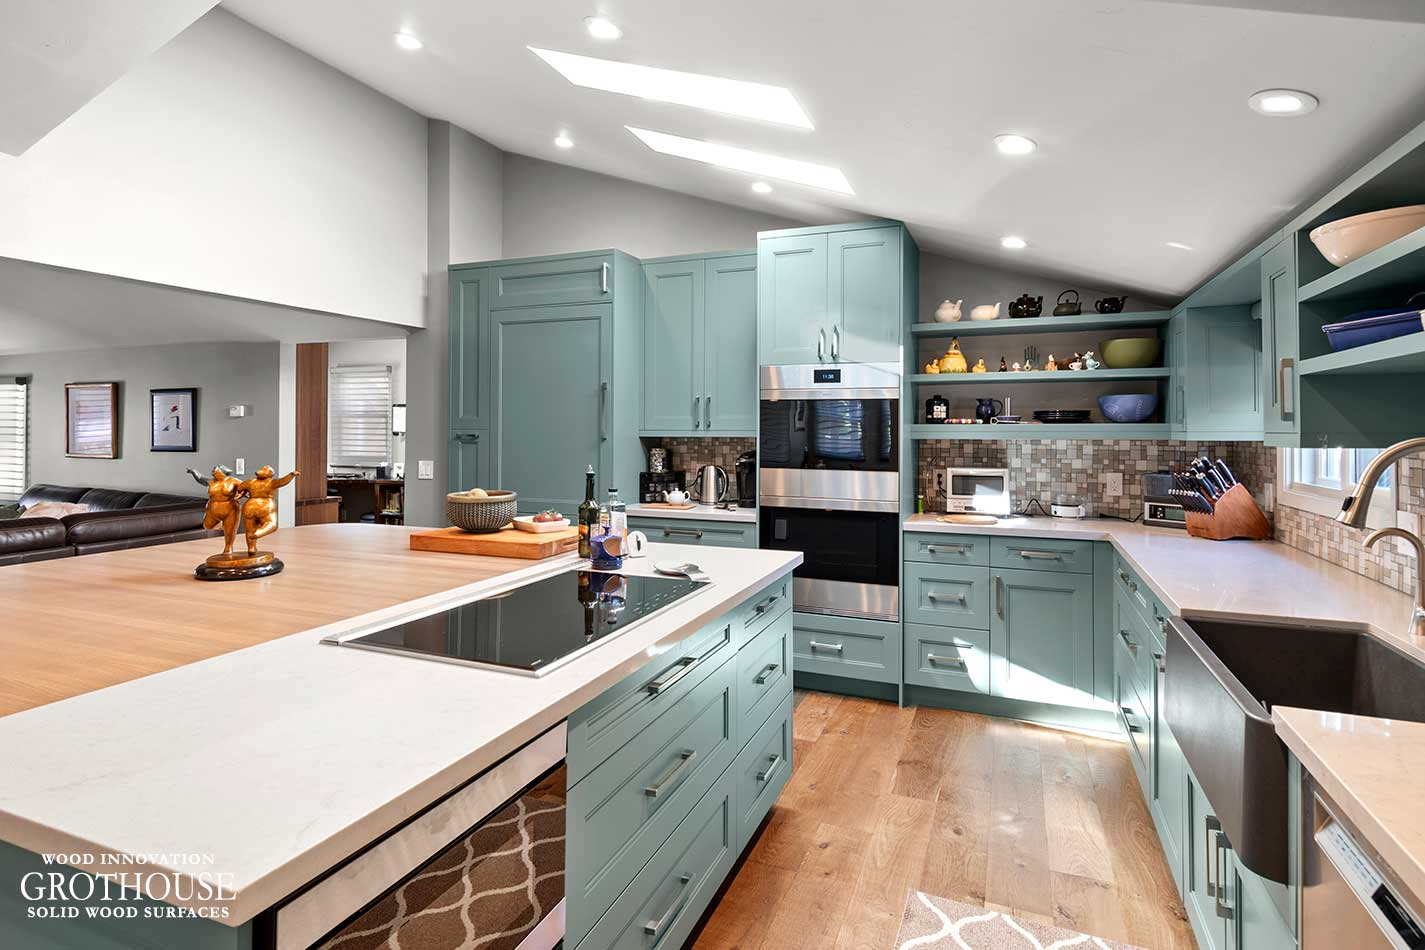 Contemporary Kitchen Design with Caesarstone Engineered Quartz Perimeter Countertops and an Ash Wood Kitchen Island Top